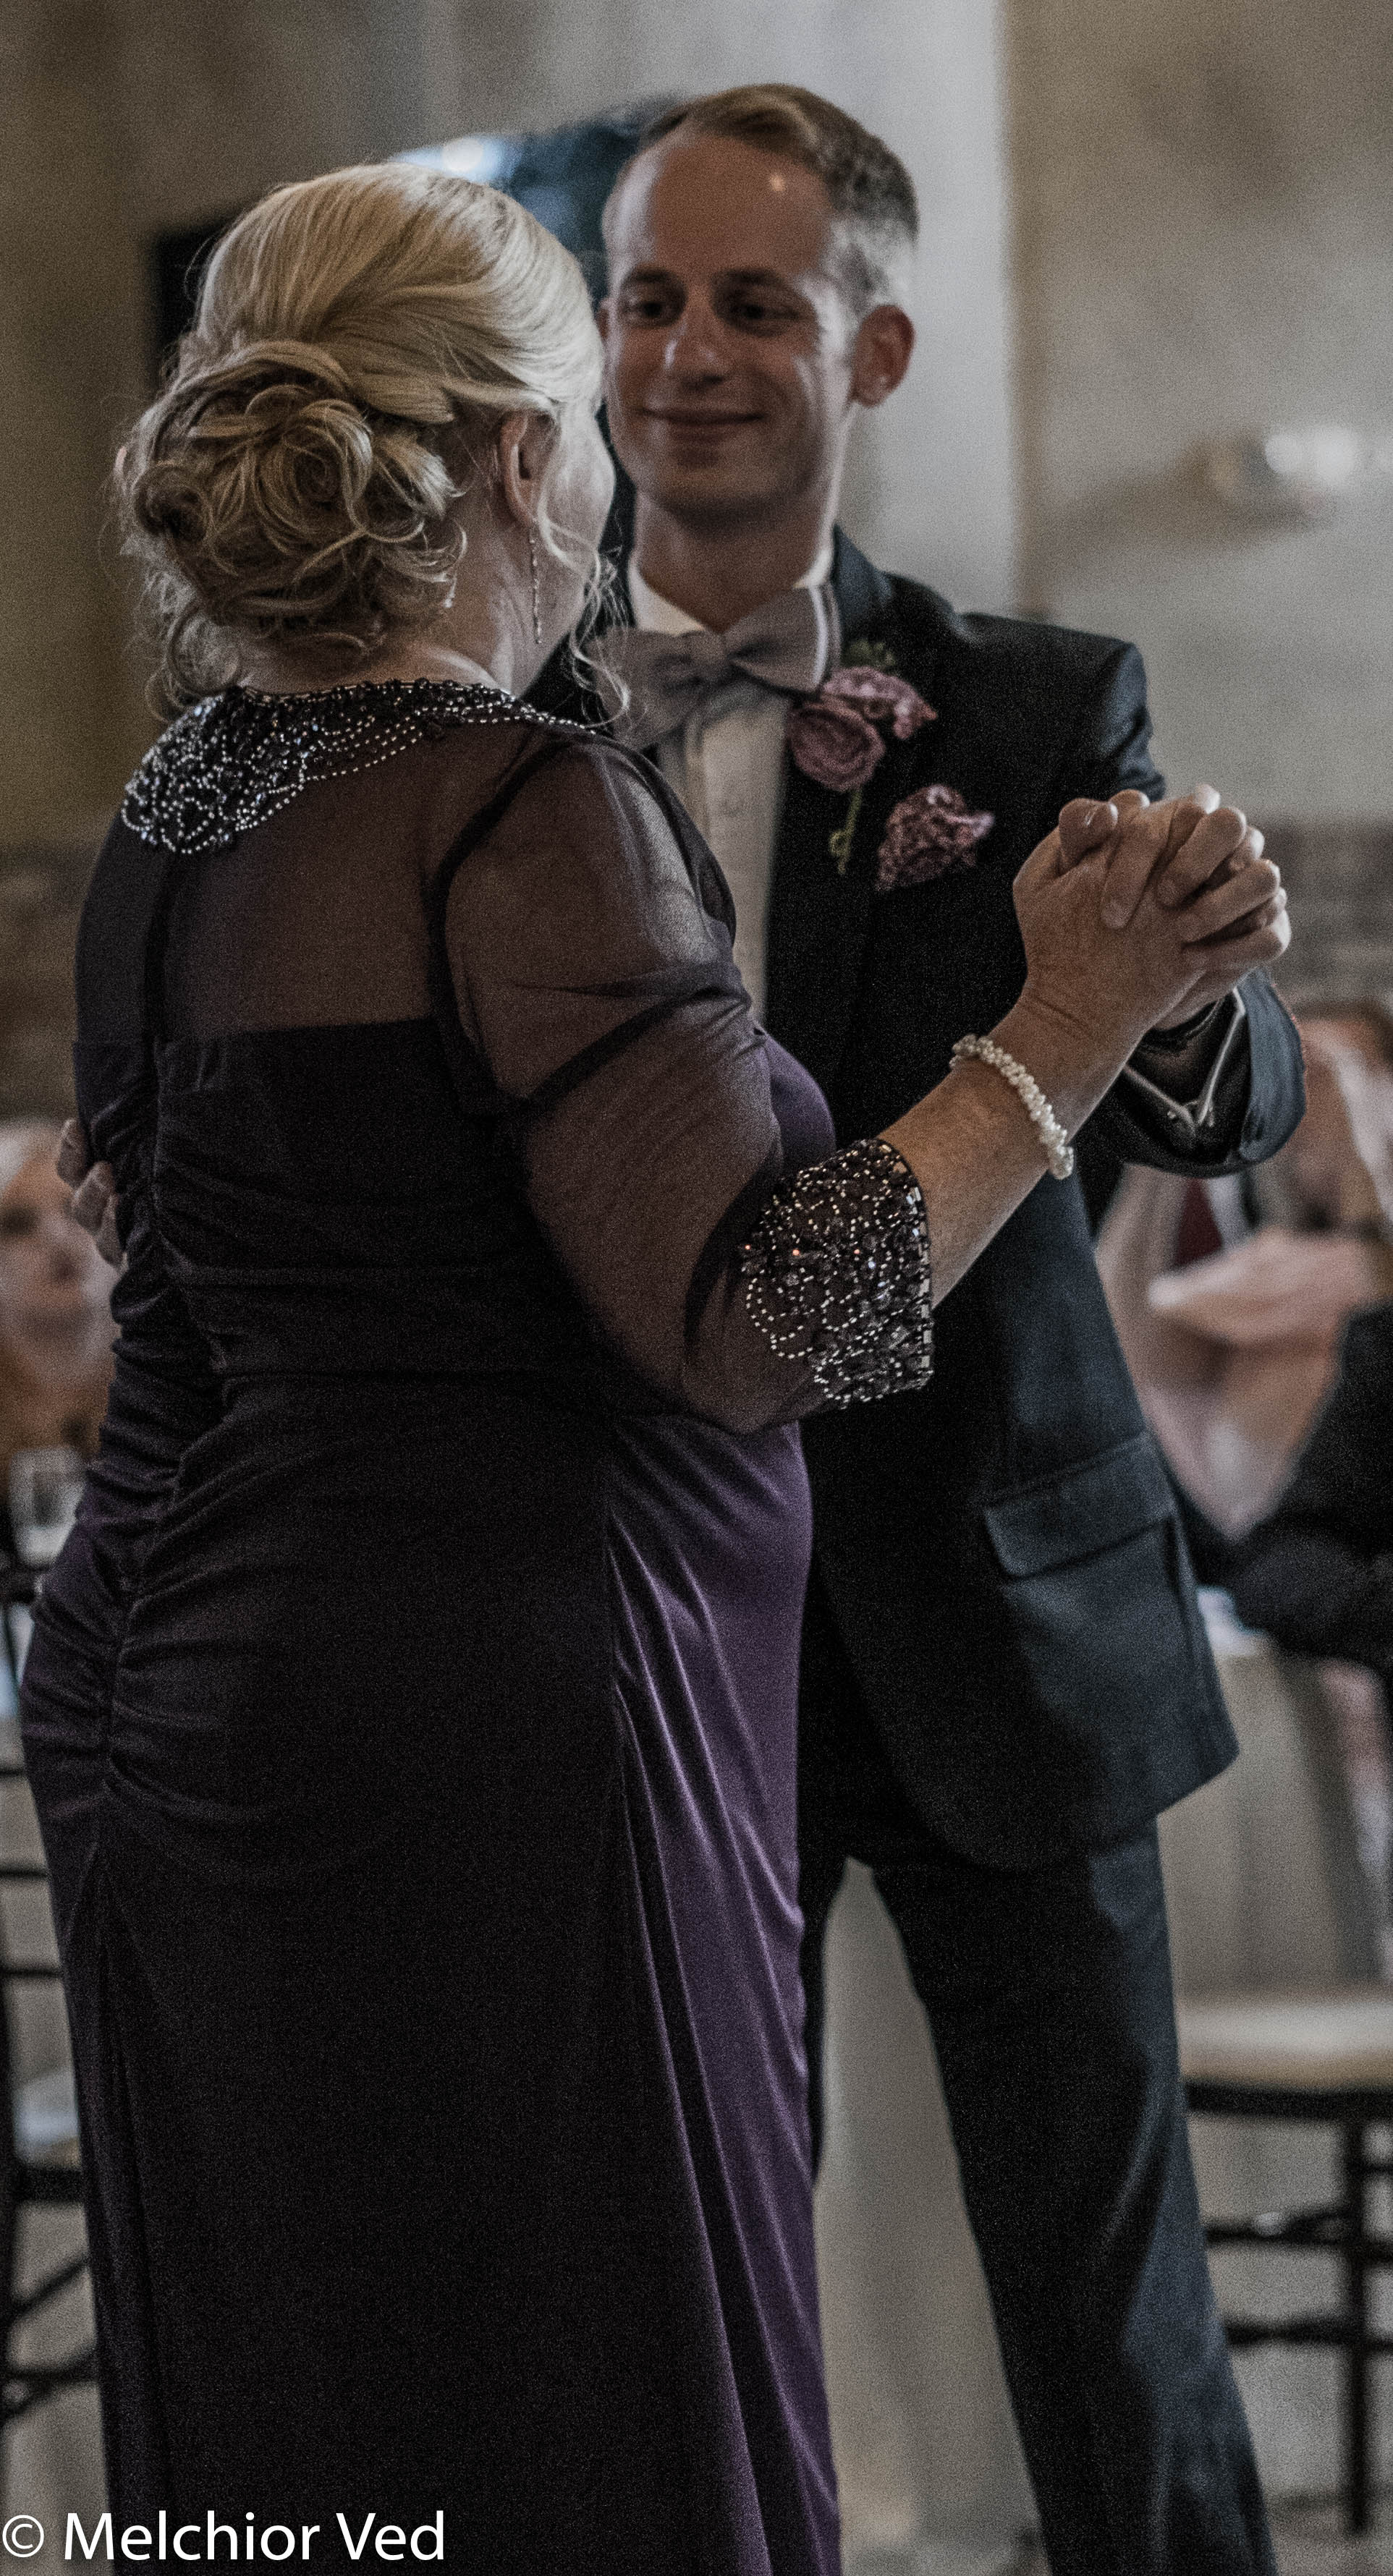 A Dance With His Mother